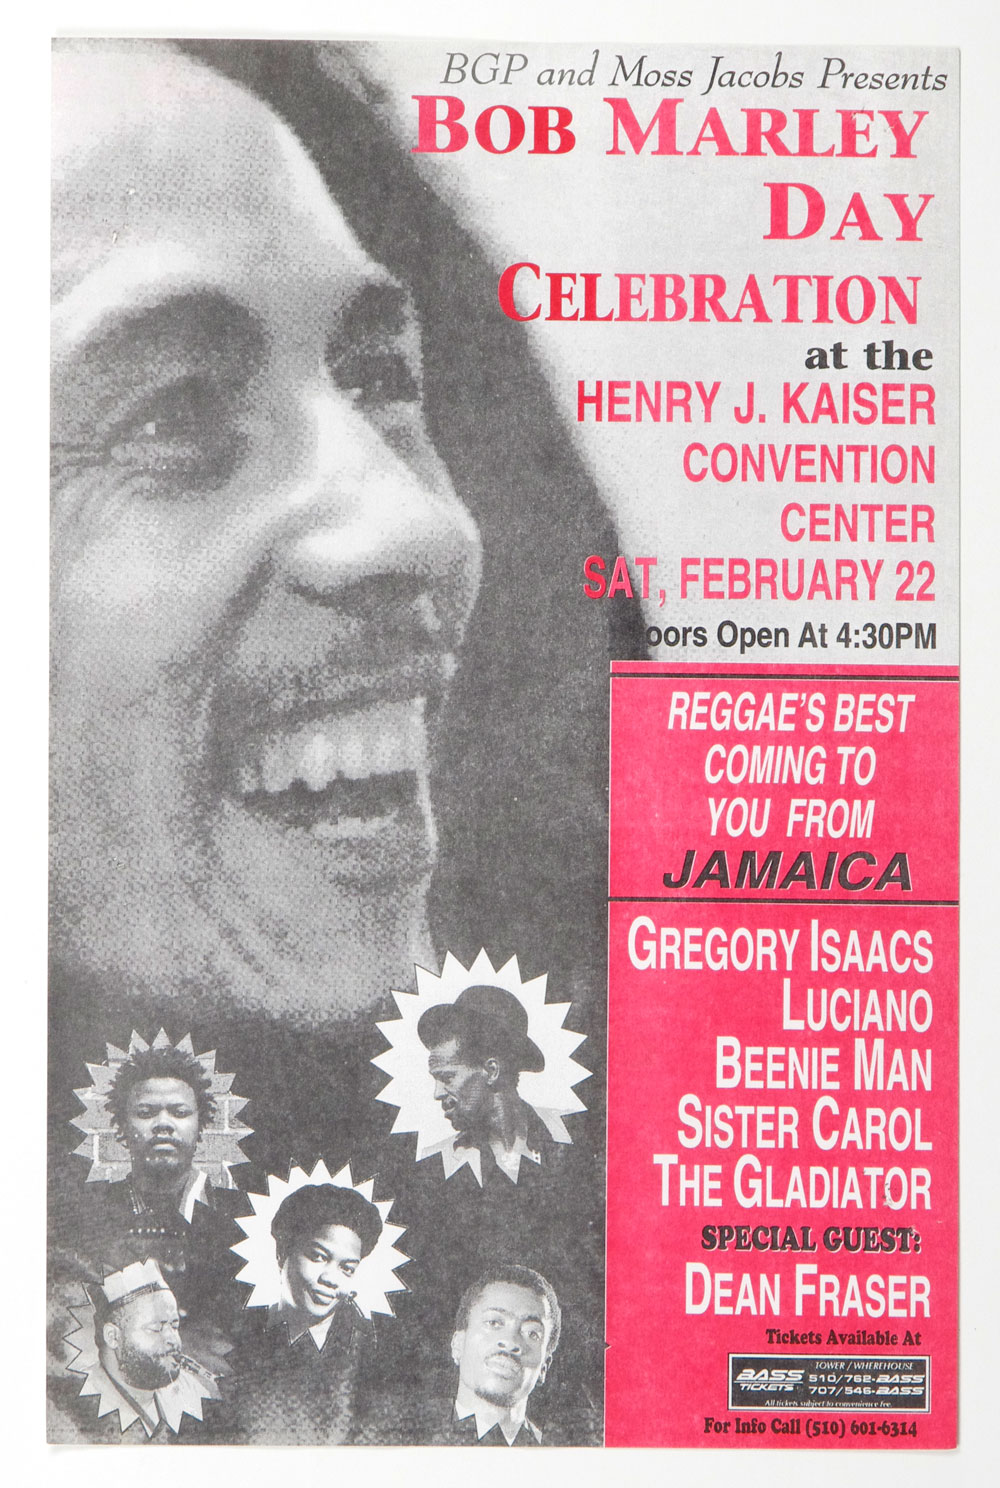 Bob Marley Day Gregory Issac Poster 1996 Feb 22 Oakland